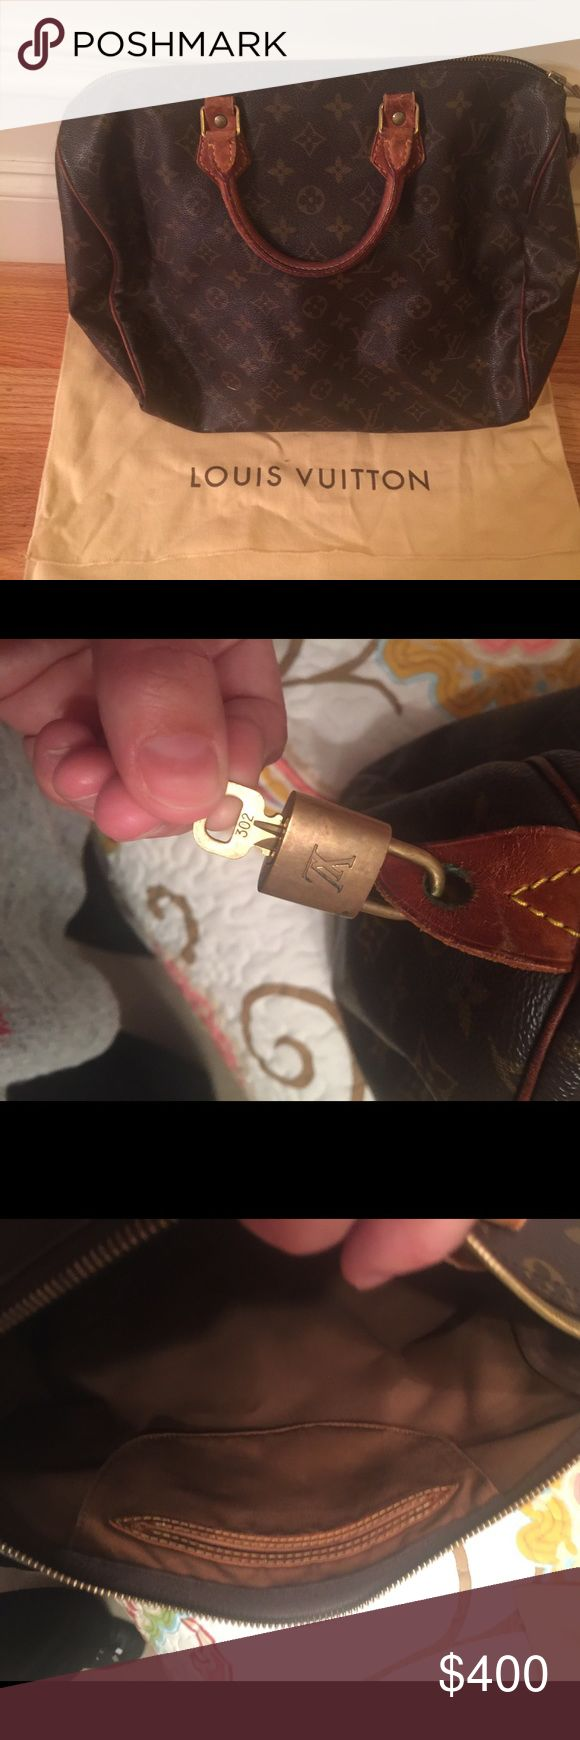 Authentic Louis Vuitton Speedy 40 This vintage bag is in good condition! It has some wear on the handles from carrying but no scratches. Inside is clean, except for a pen mark. Comes with original lock and key! Louis Vuitton Bags